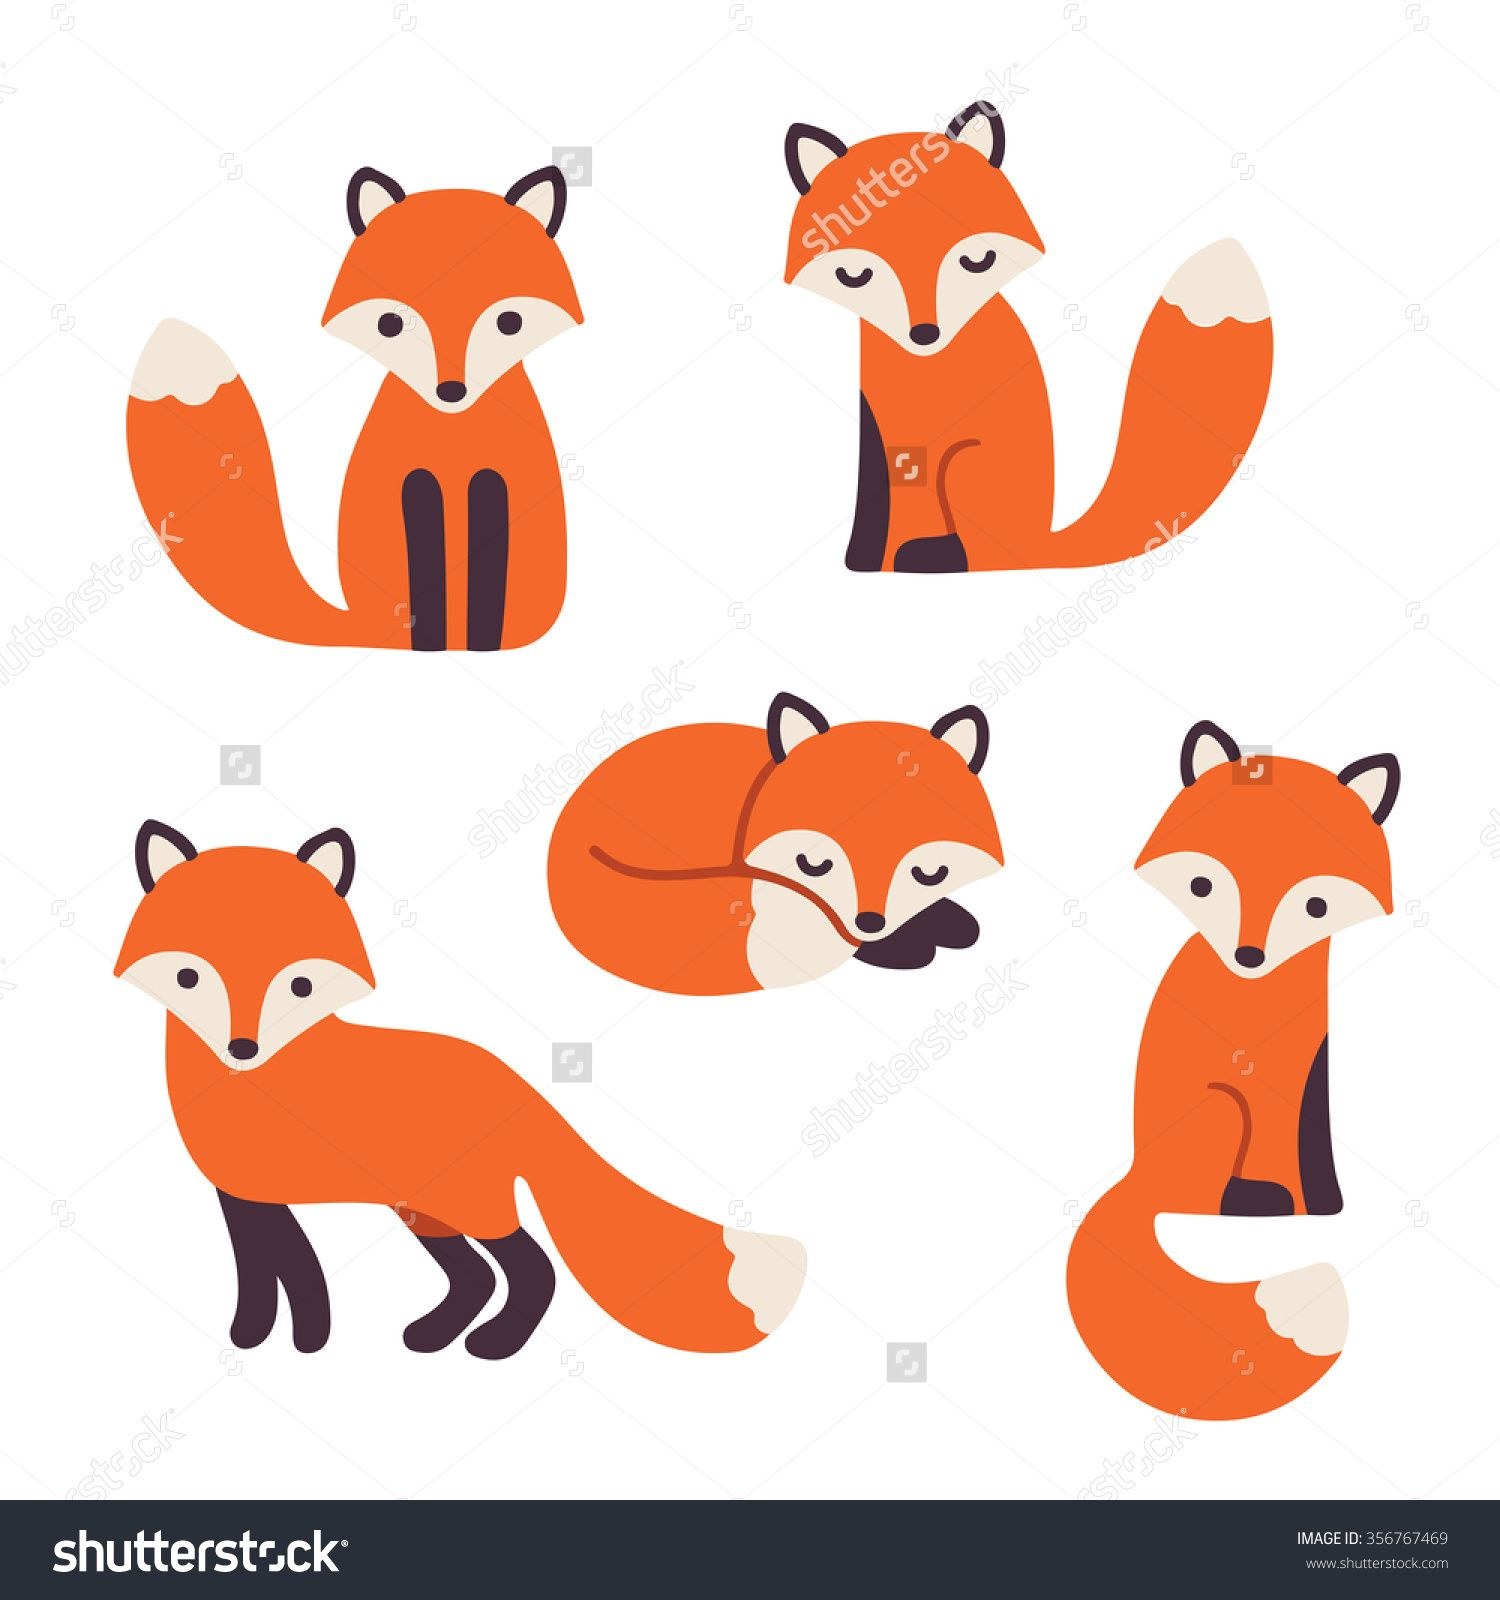 Fox clipart easy. Pin by ehsan on